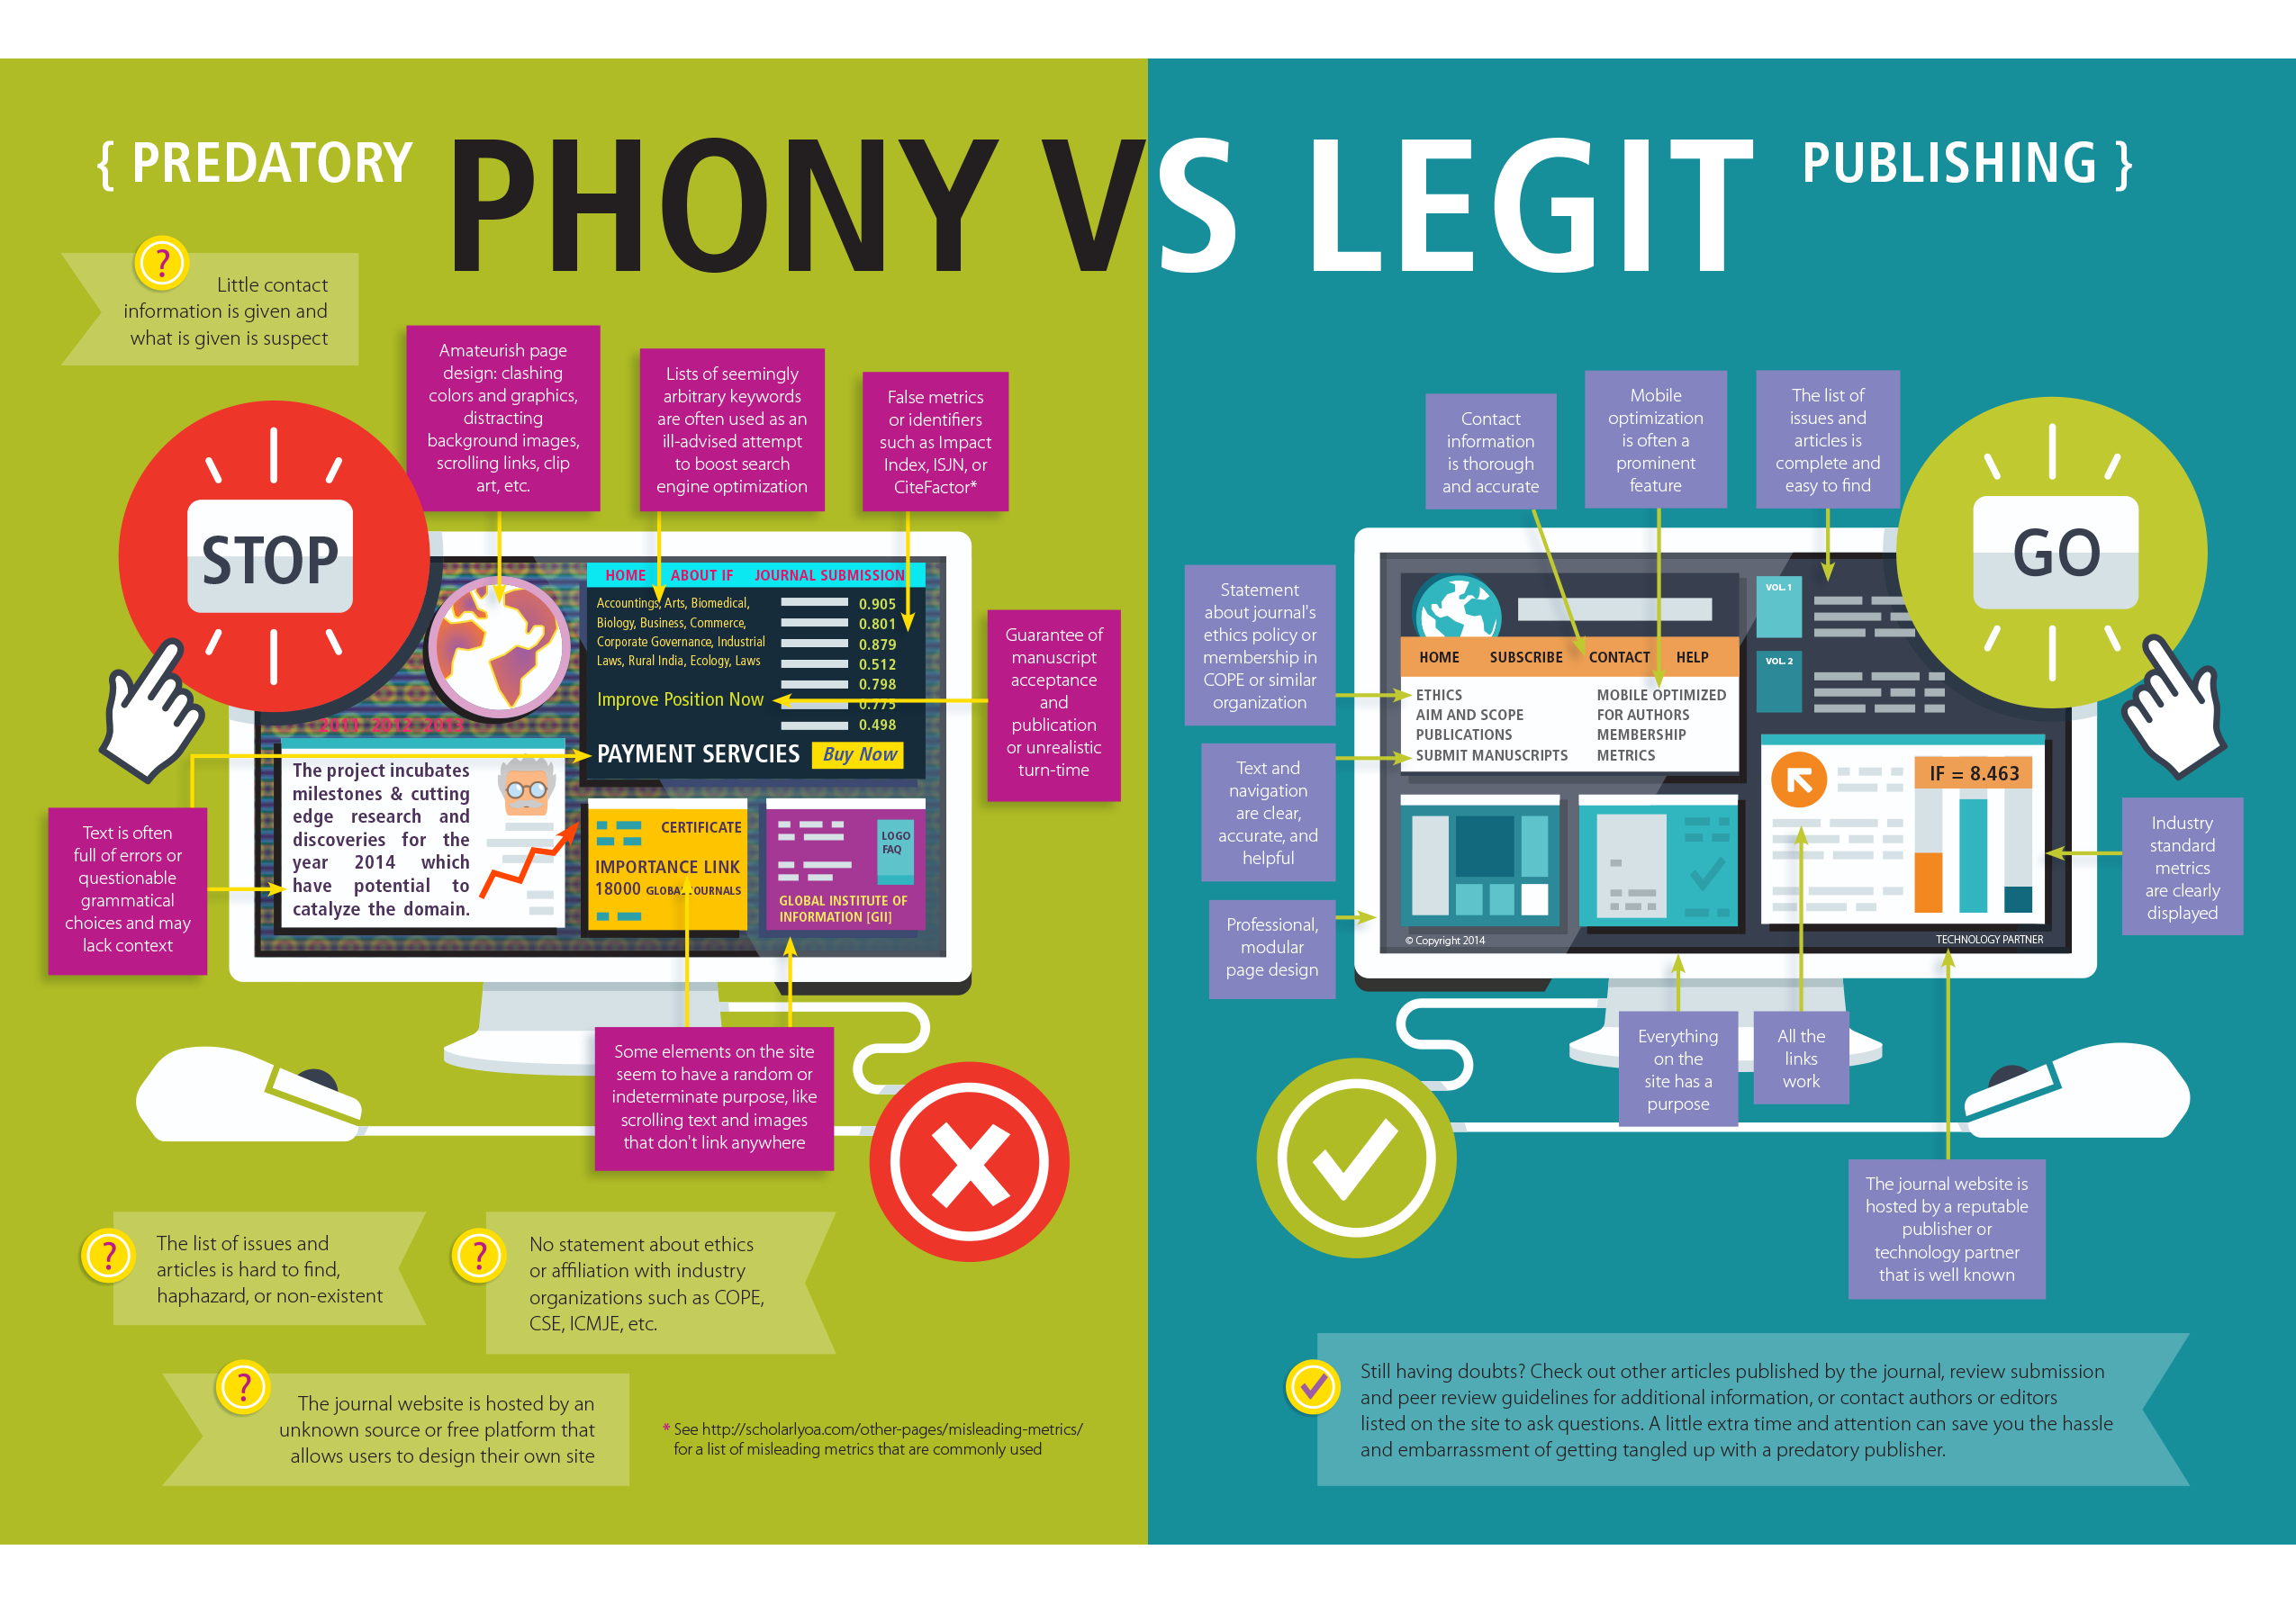 See A Detailedgraphic On Predatory Publishing